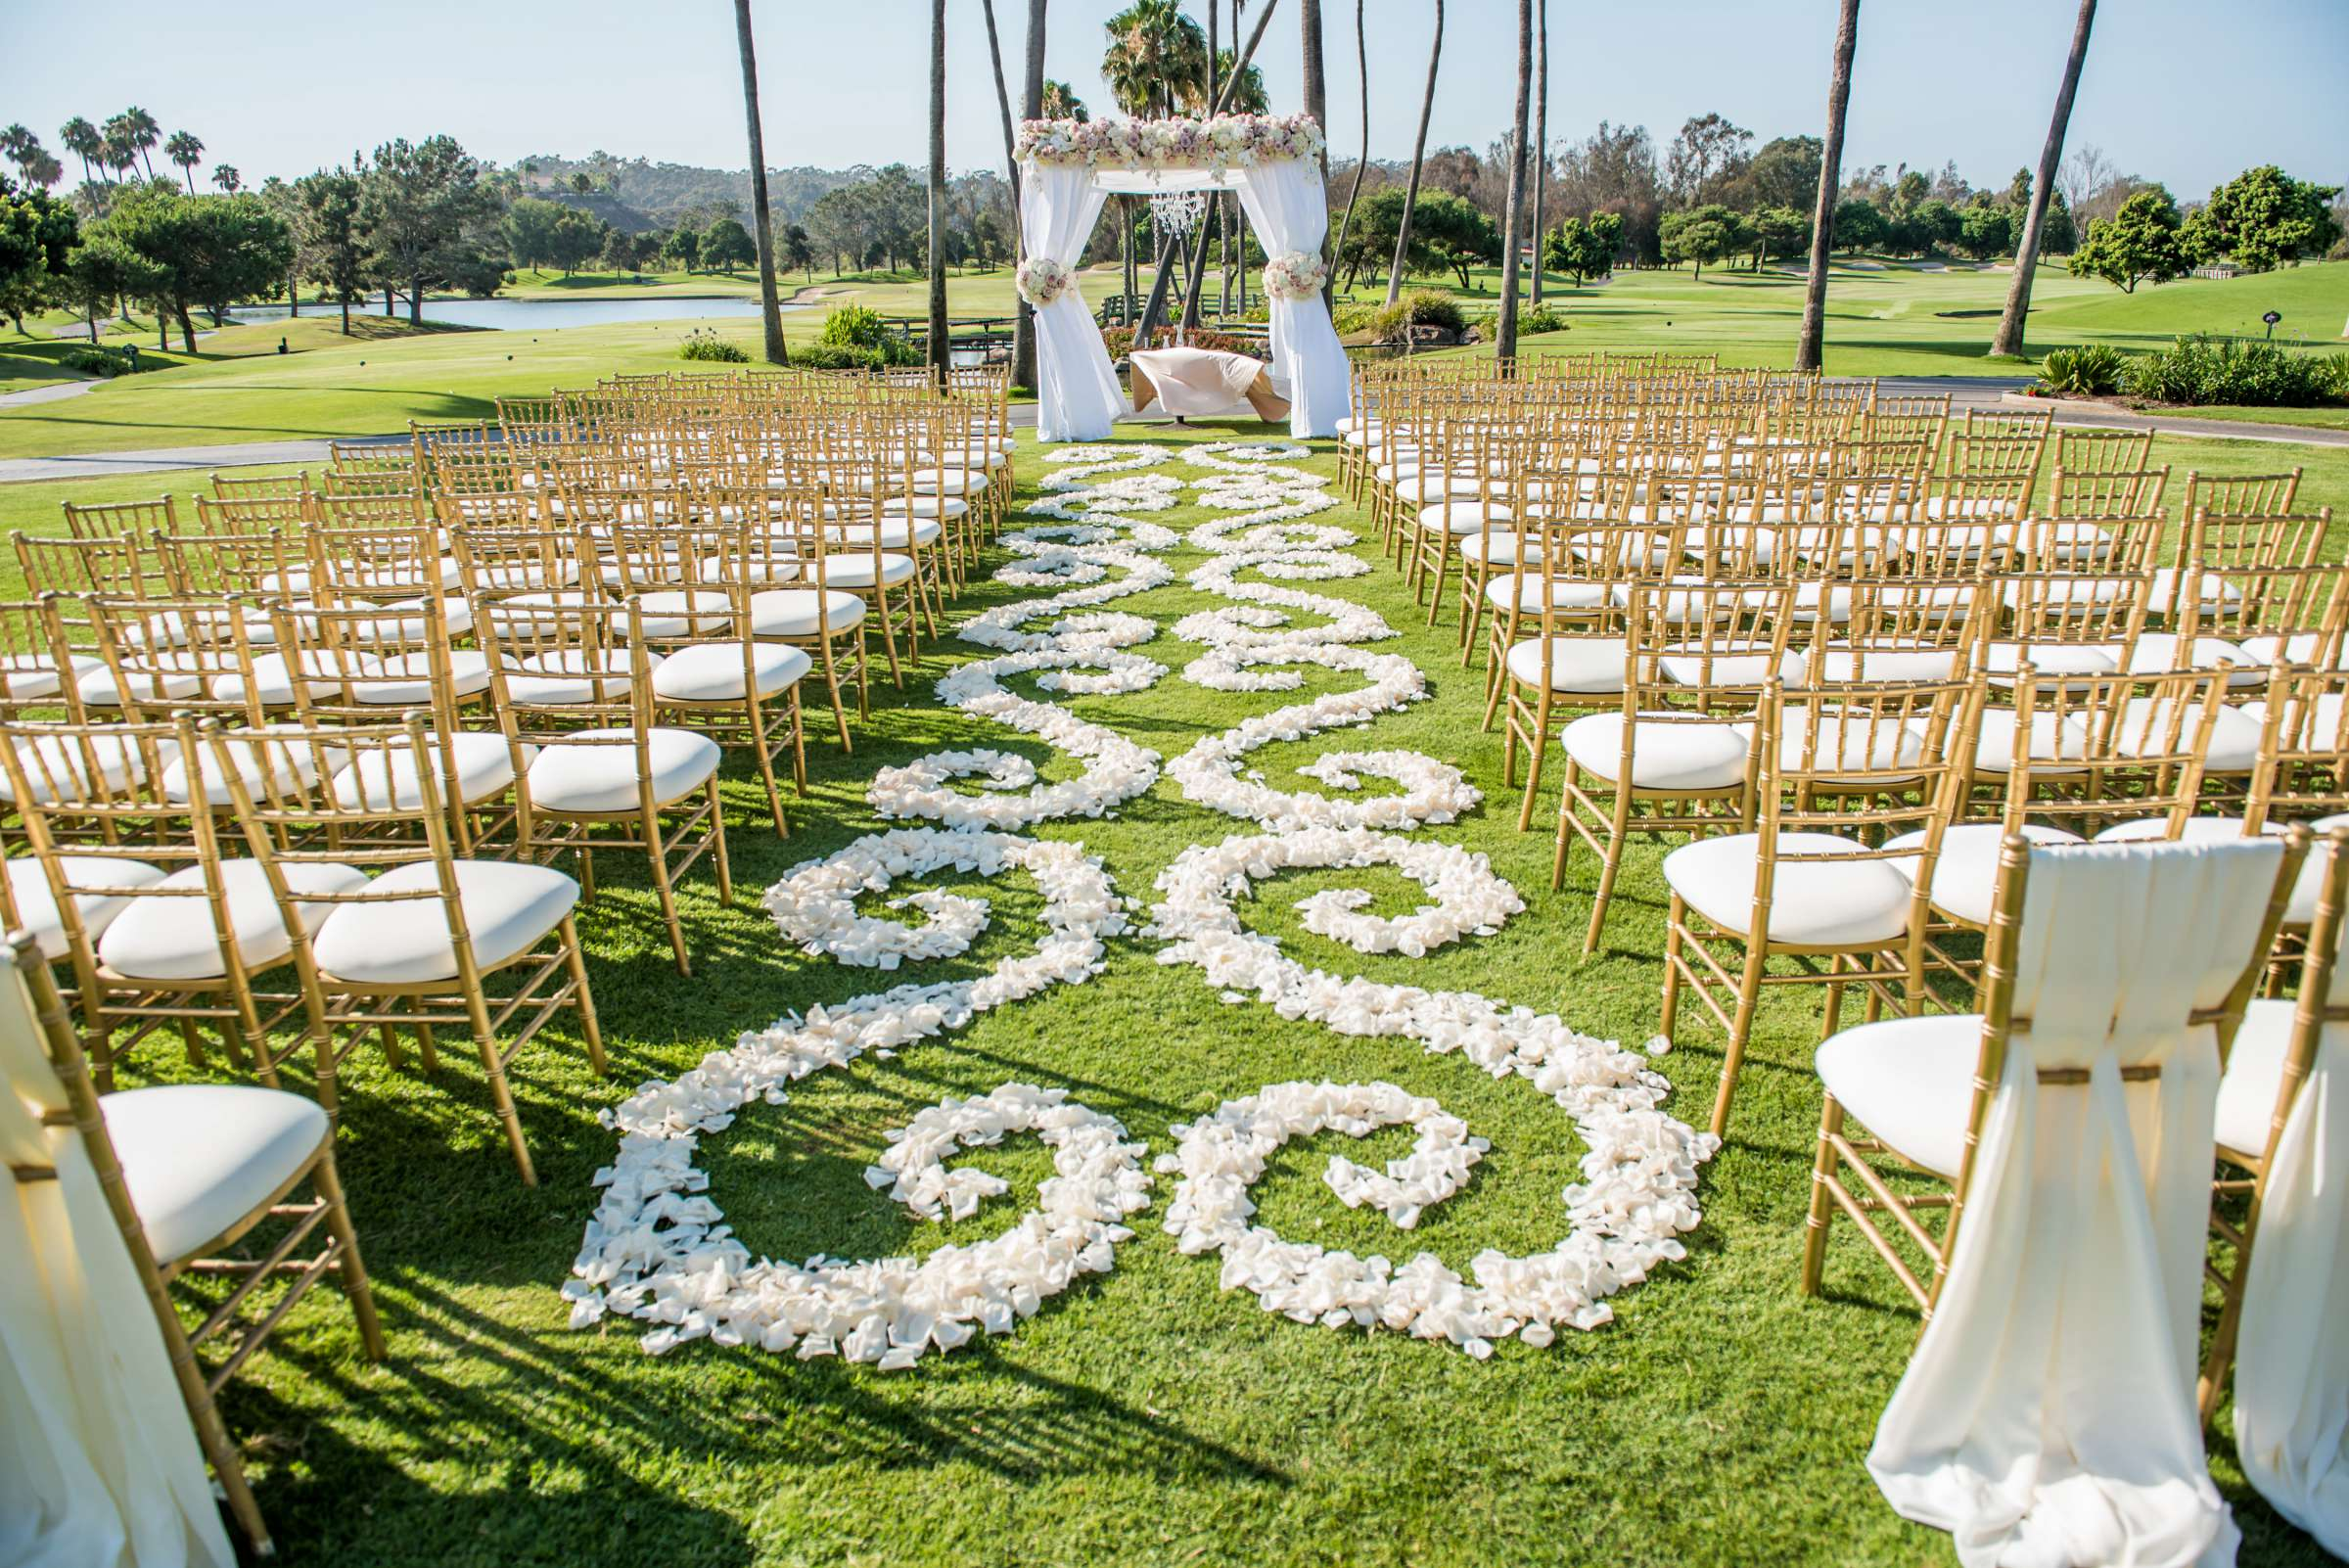 Photographers Favorite at Fairbanks Ranch Country Club Wedding coordinated by Monarch Weddings, Gabriella and Kyle Wedding Photo #76 by True Photography